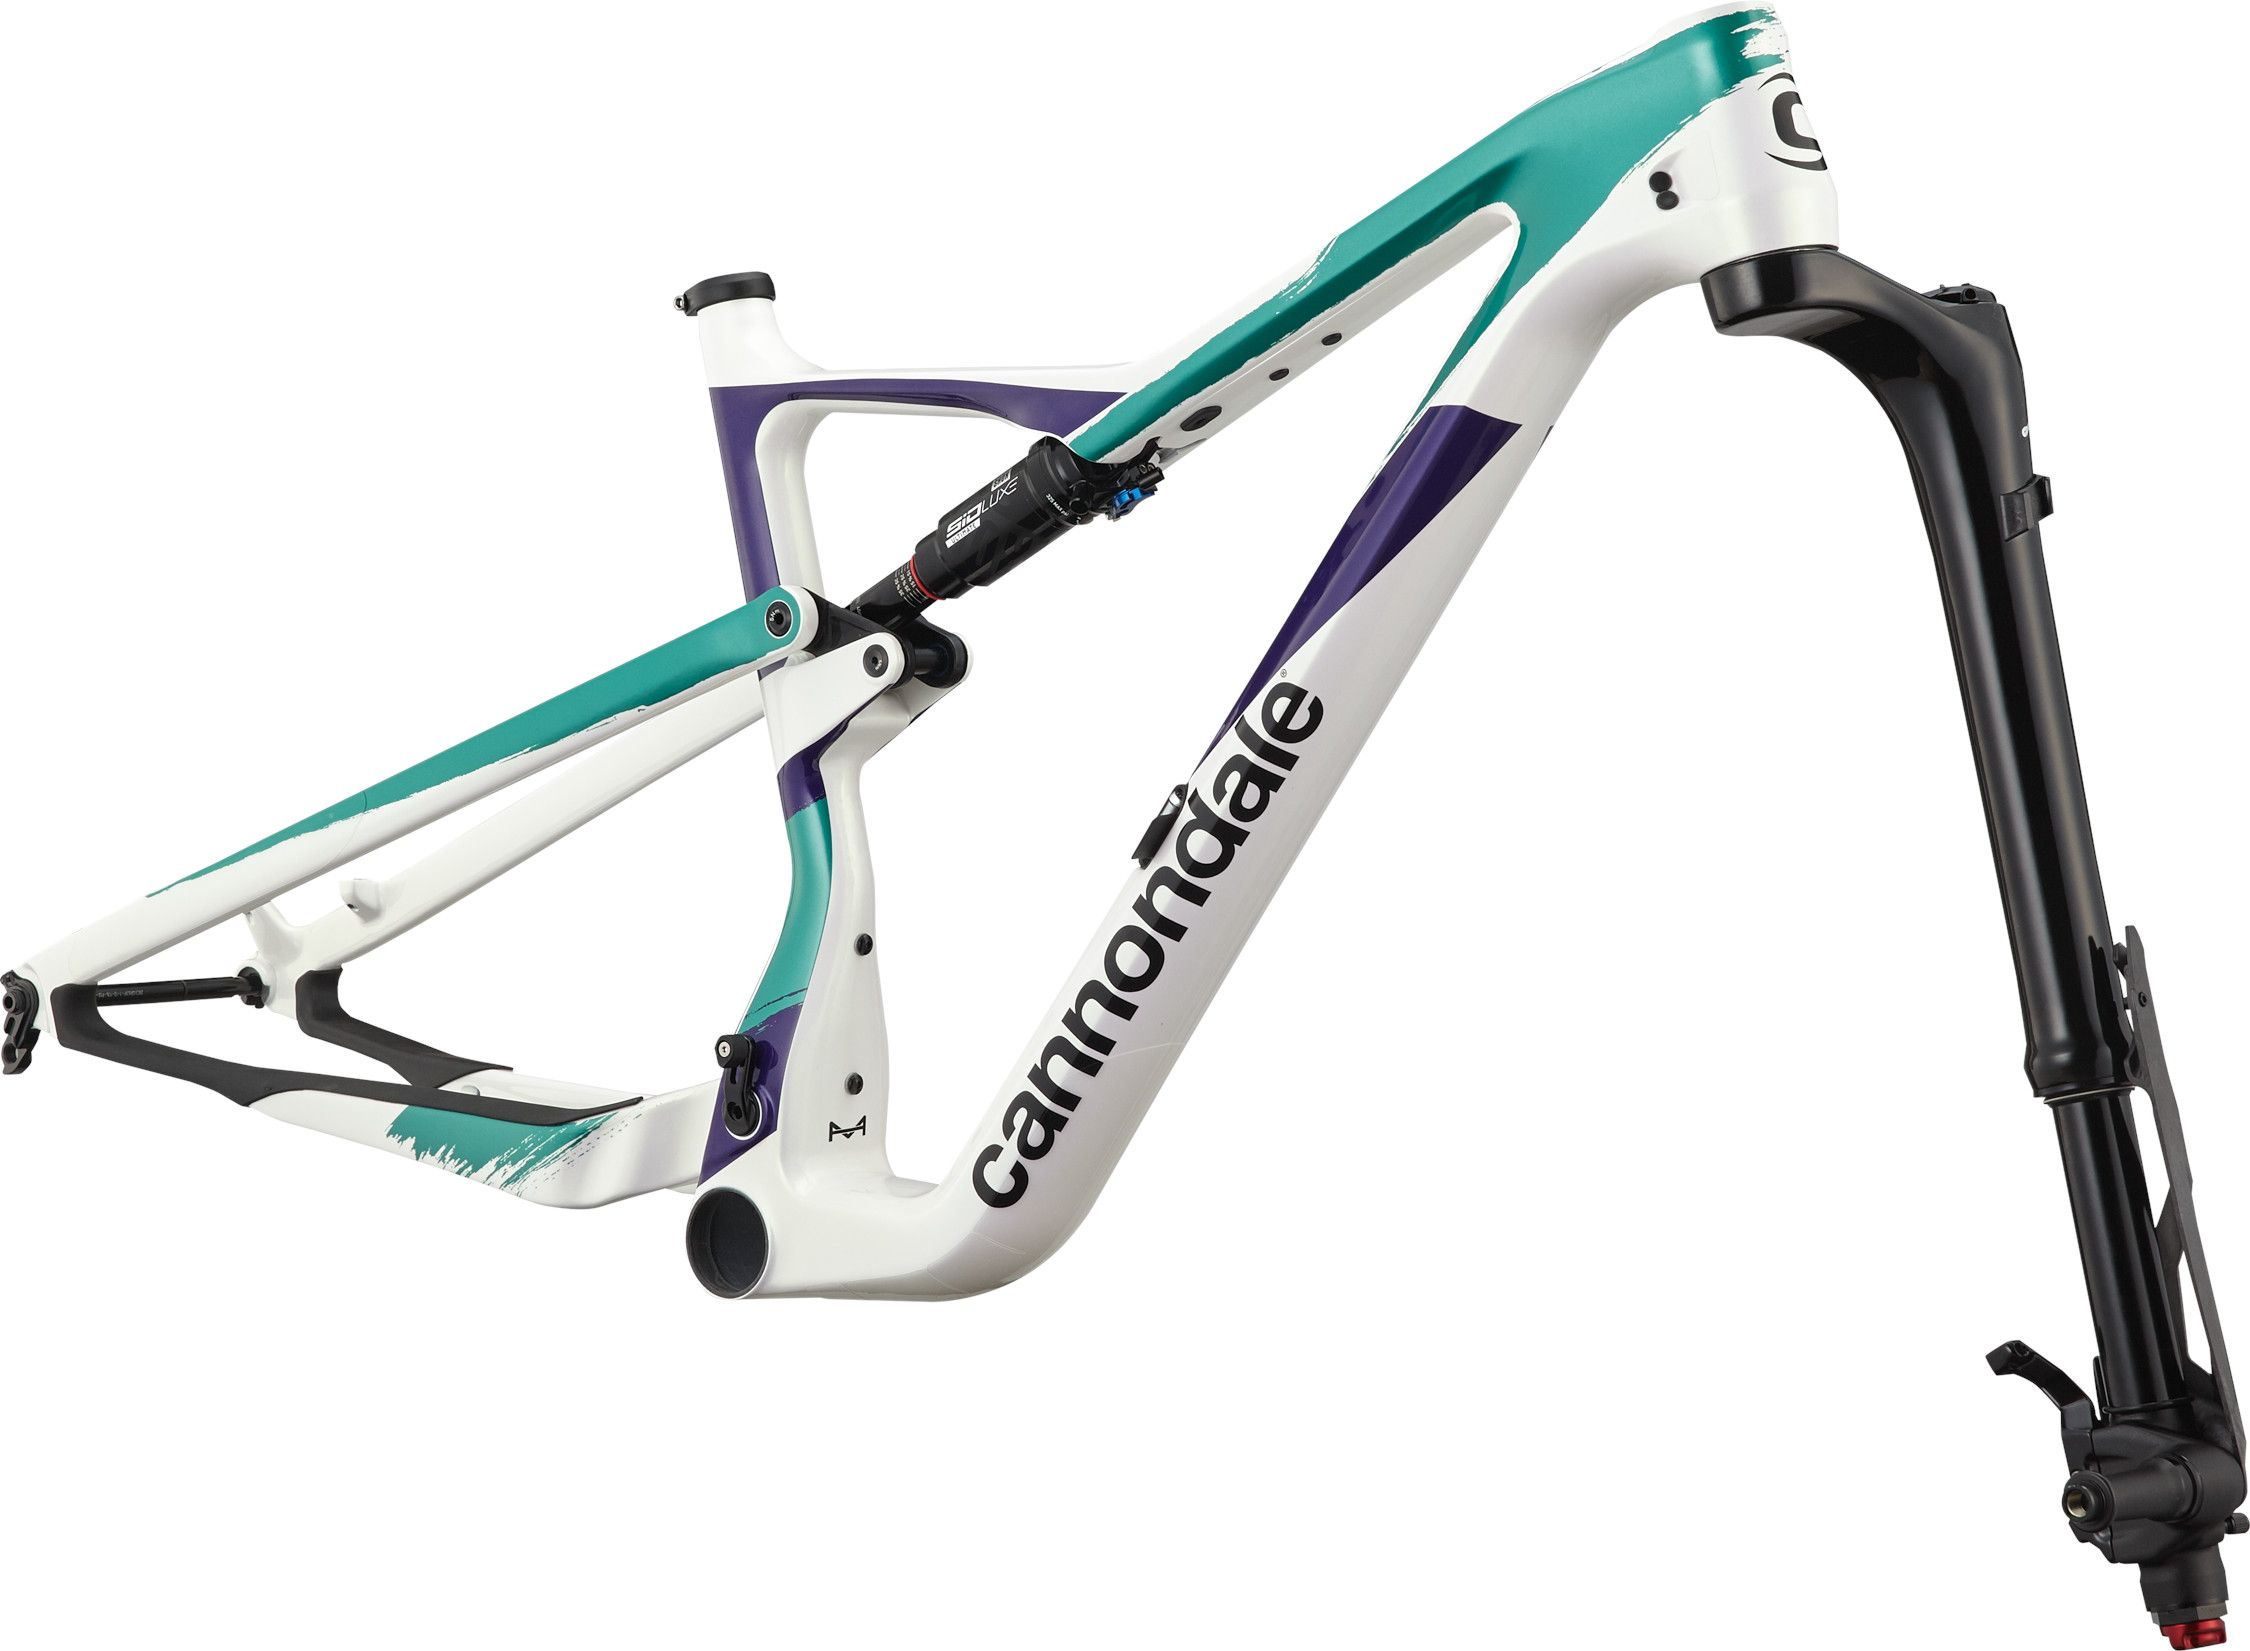 Kit de cuadro Cannondale Scalpel color IRD